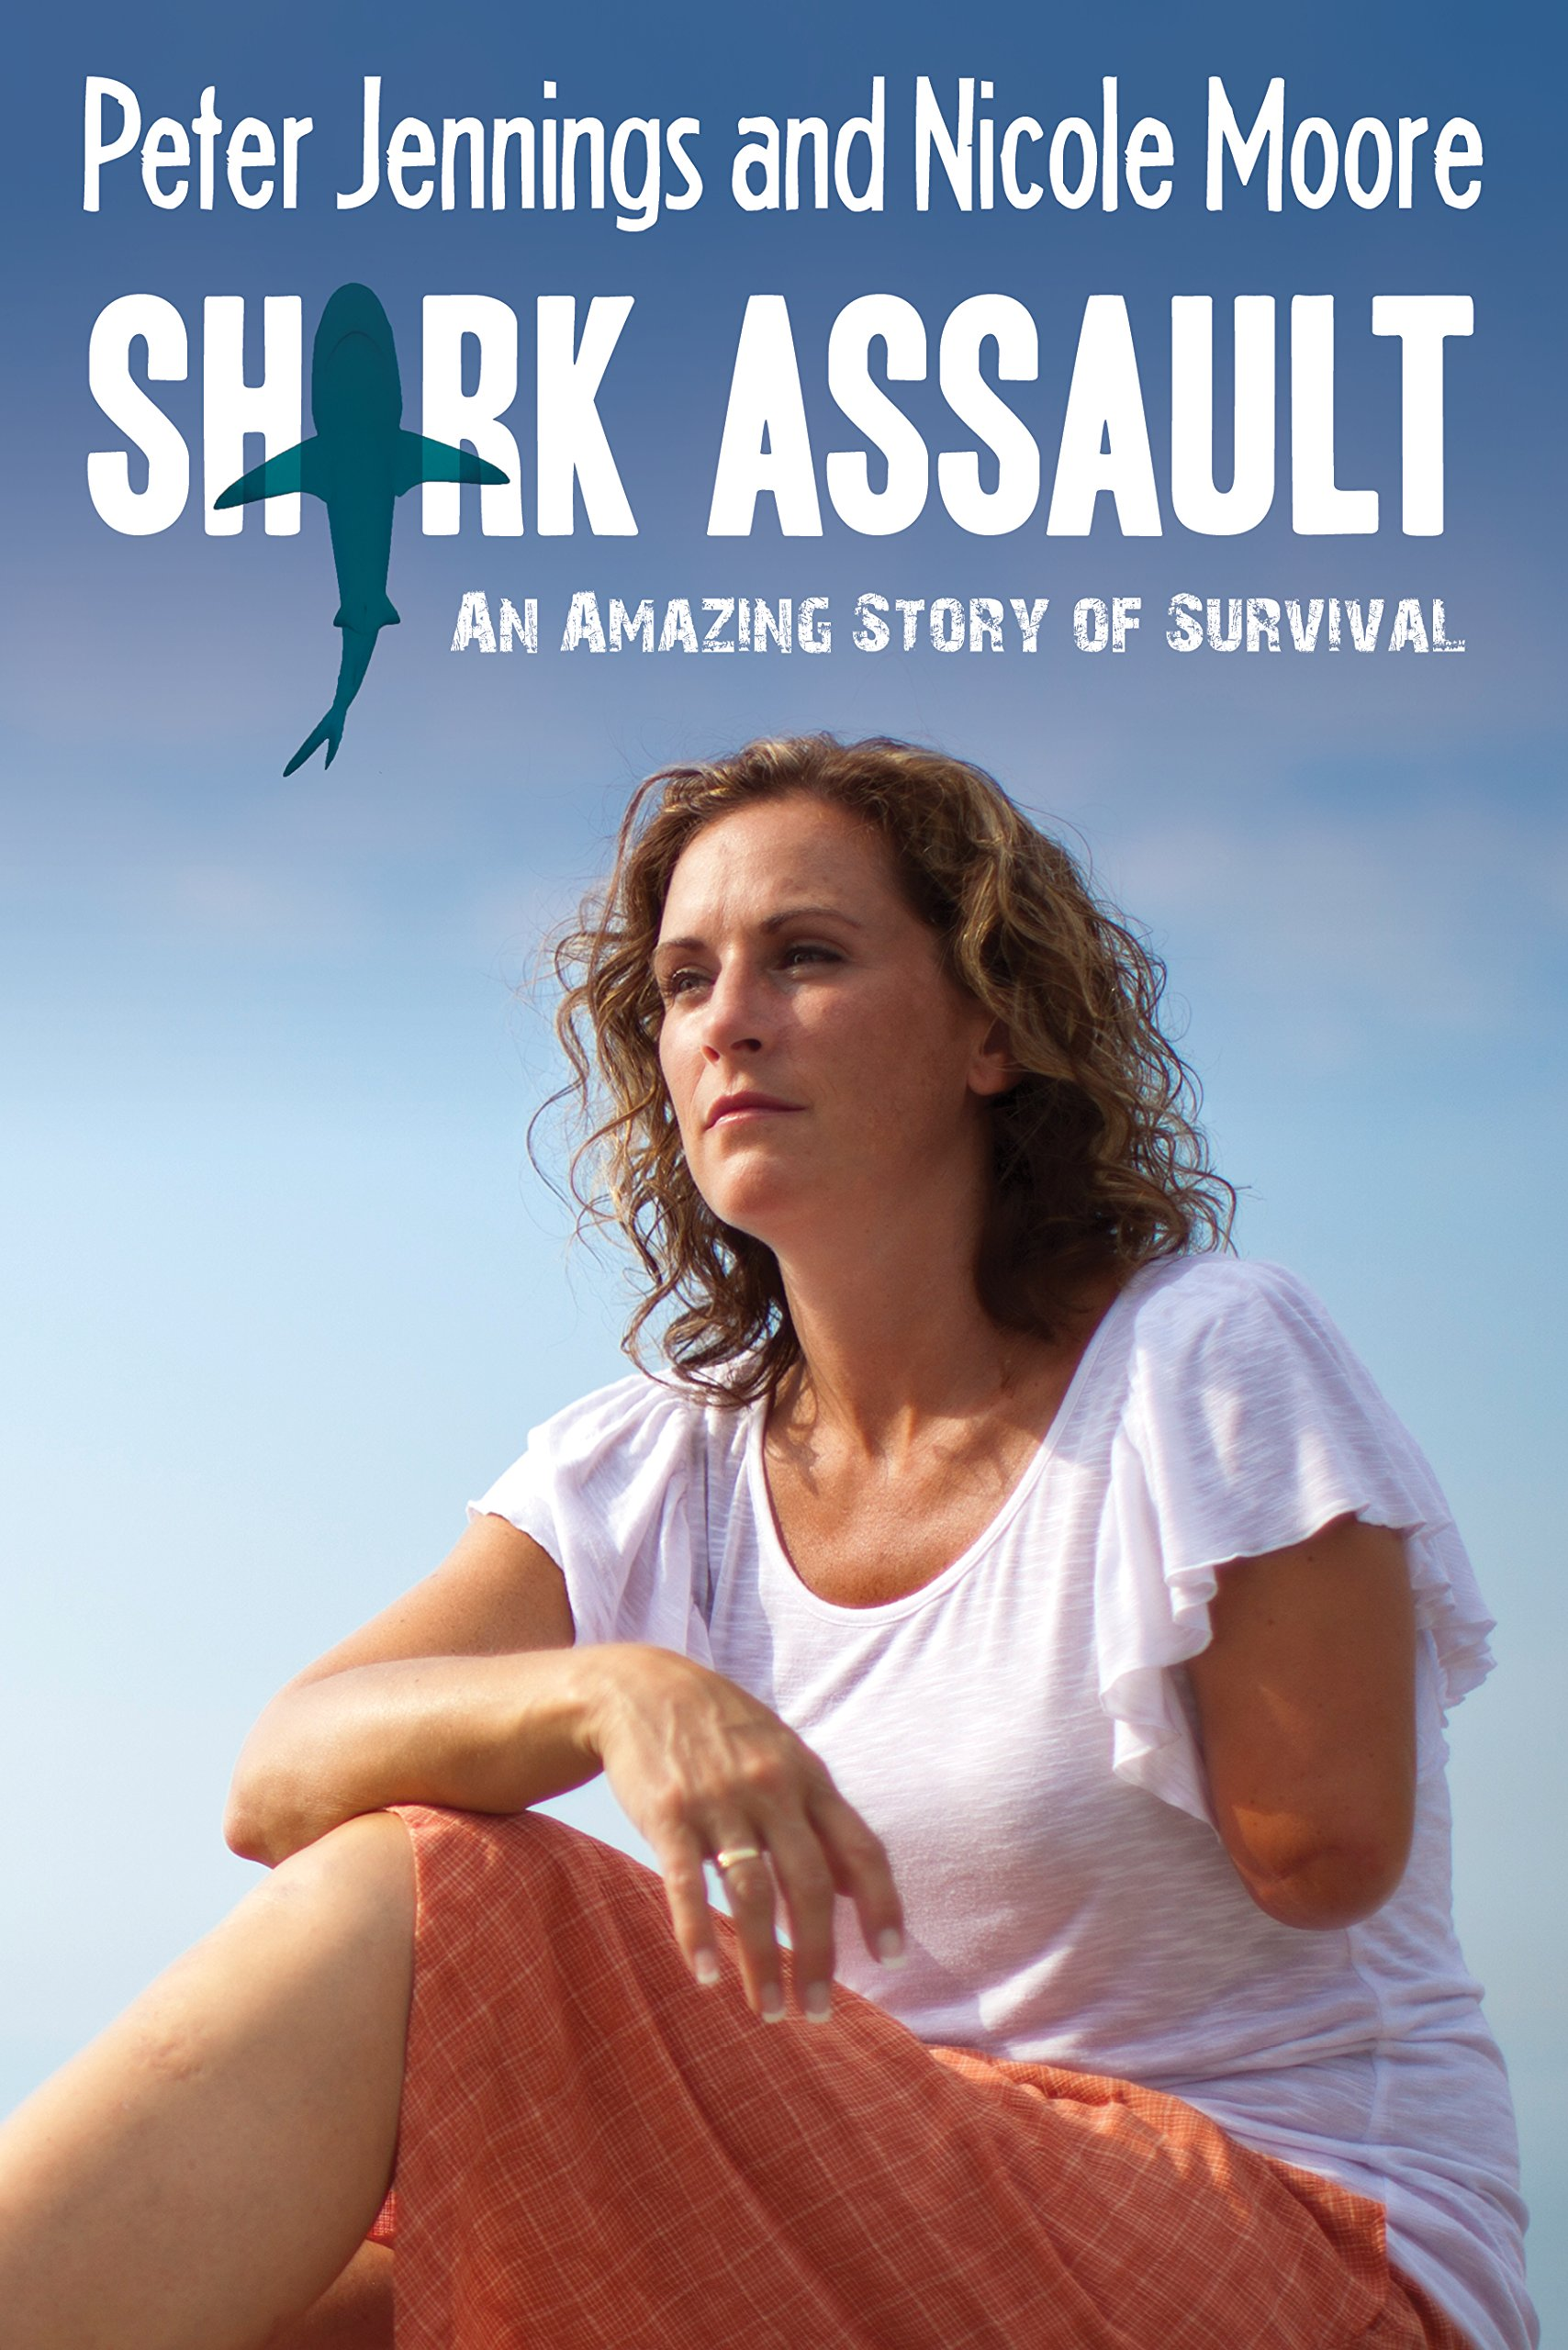 Download Shark Assault: An Amazing Story of Survival ebook